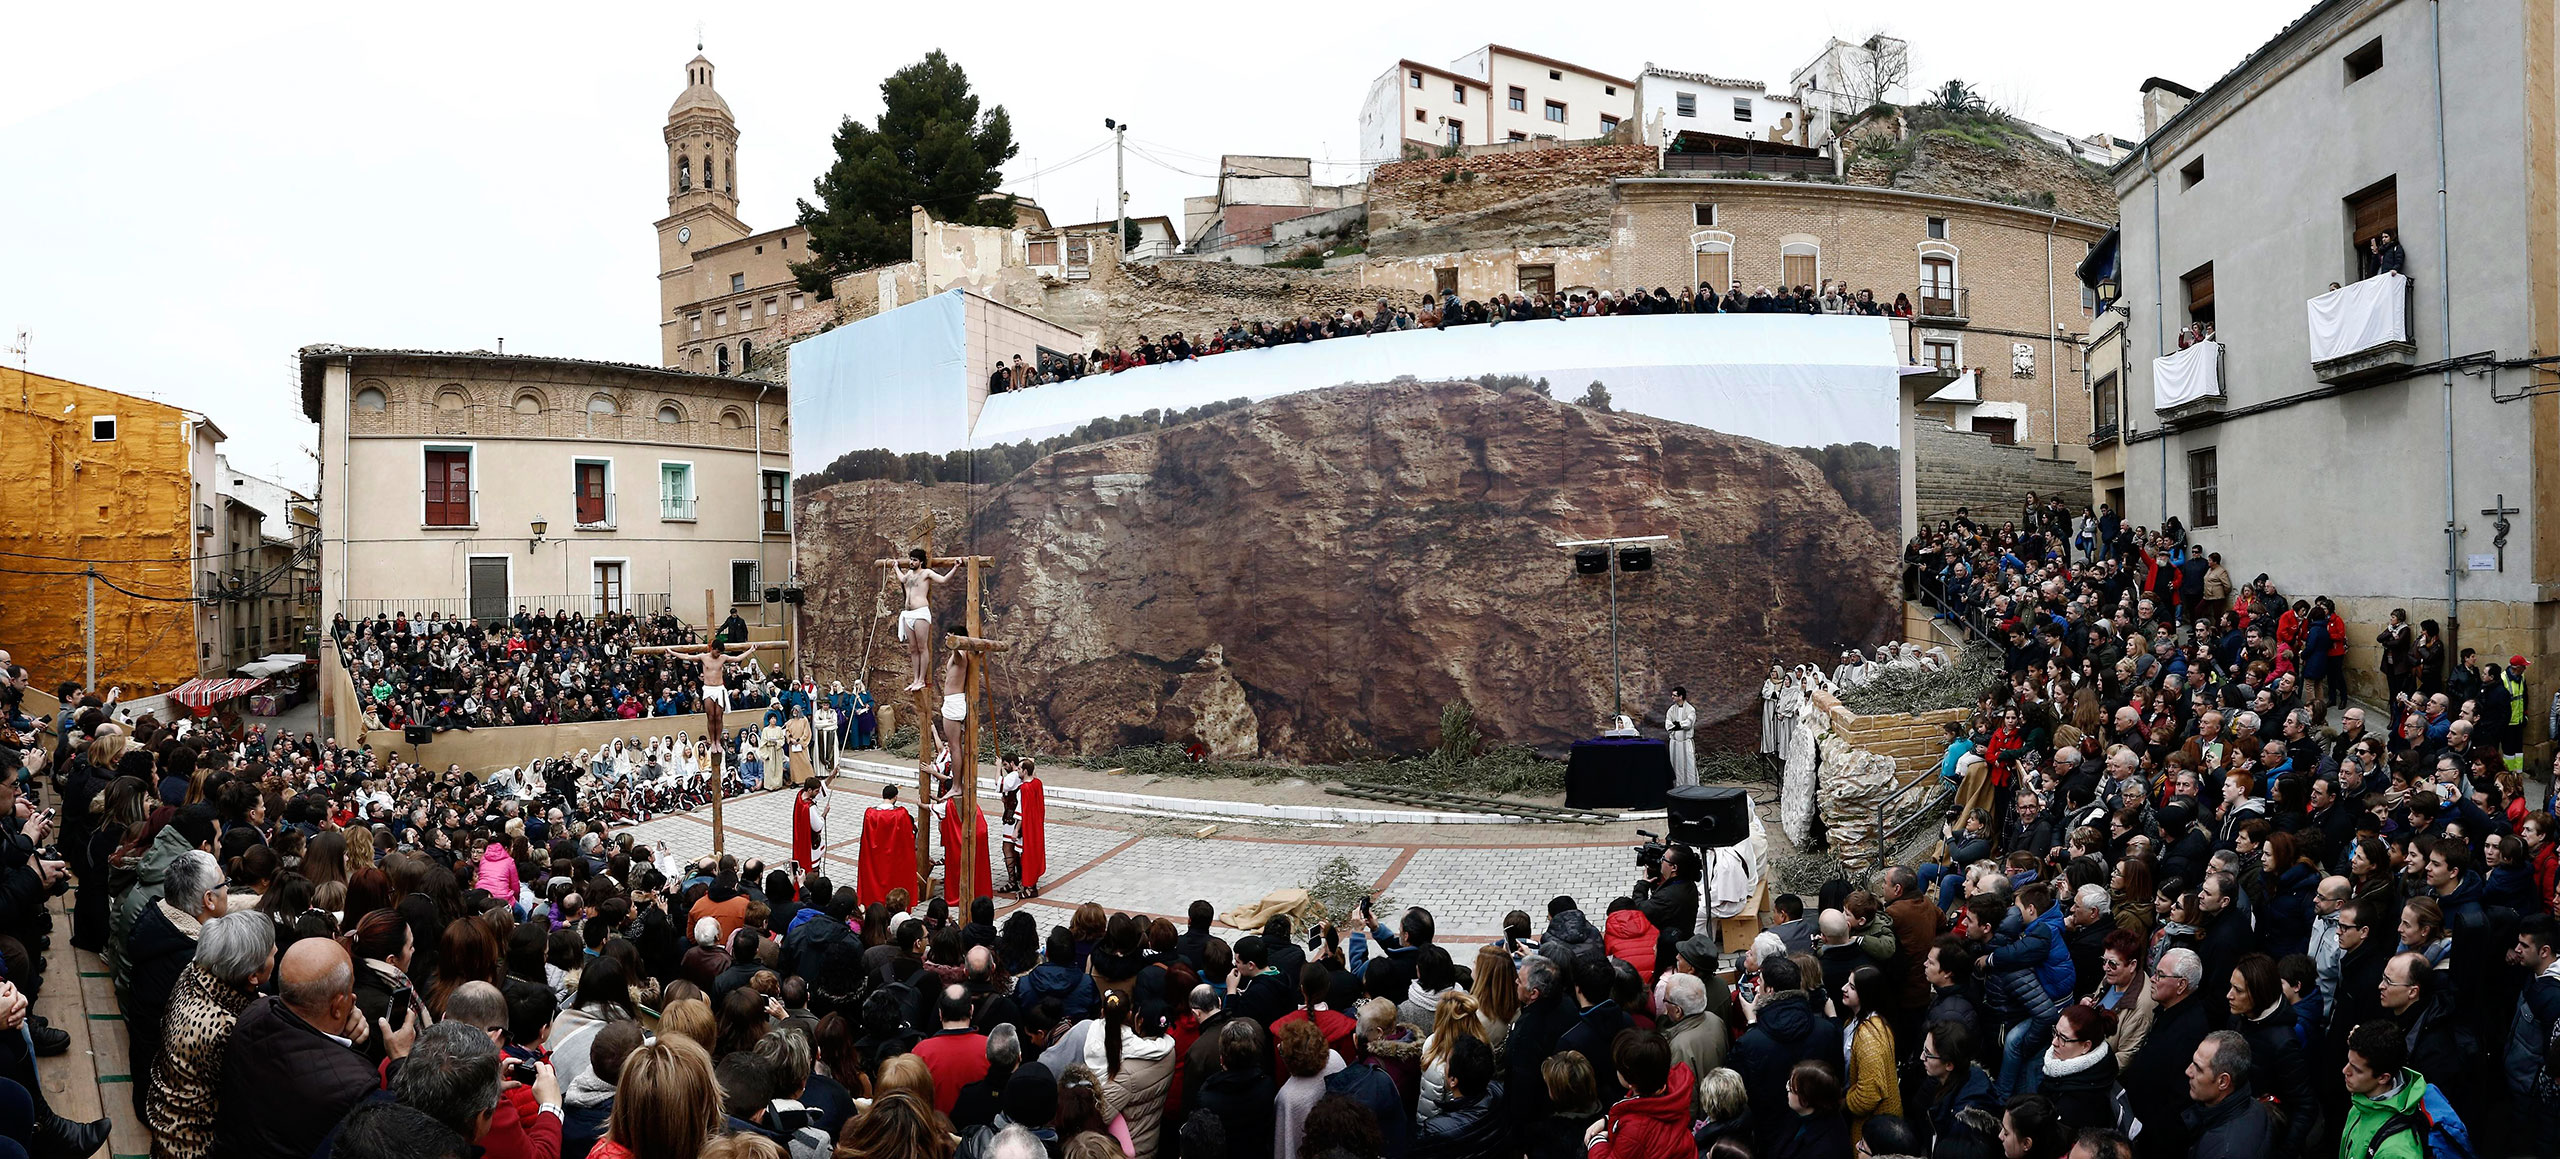 Penitents take part in the reenactment of the viacrucis at Andosilla in Navarra, Spain, March 25, 2016.